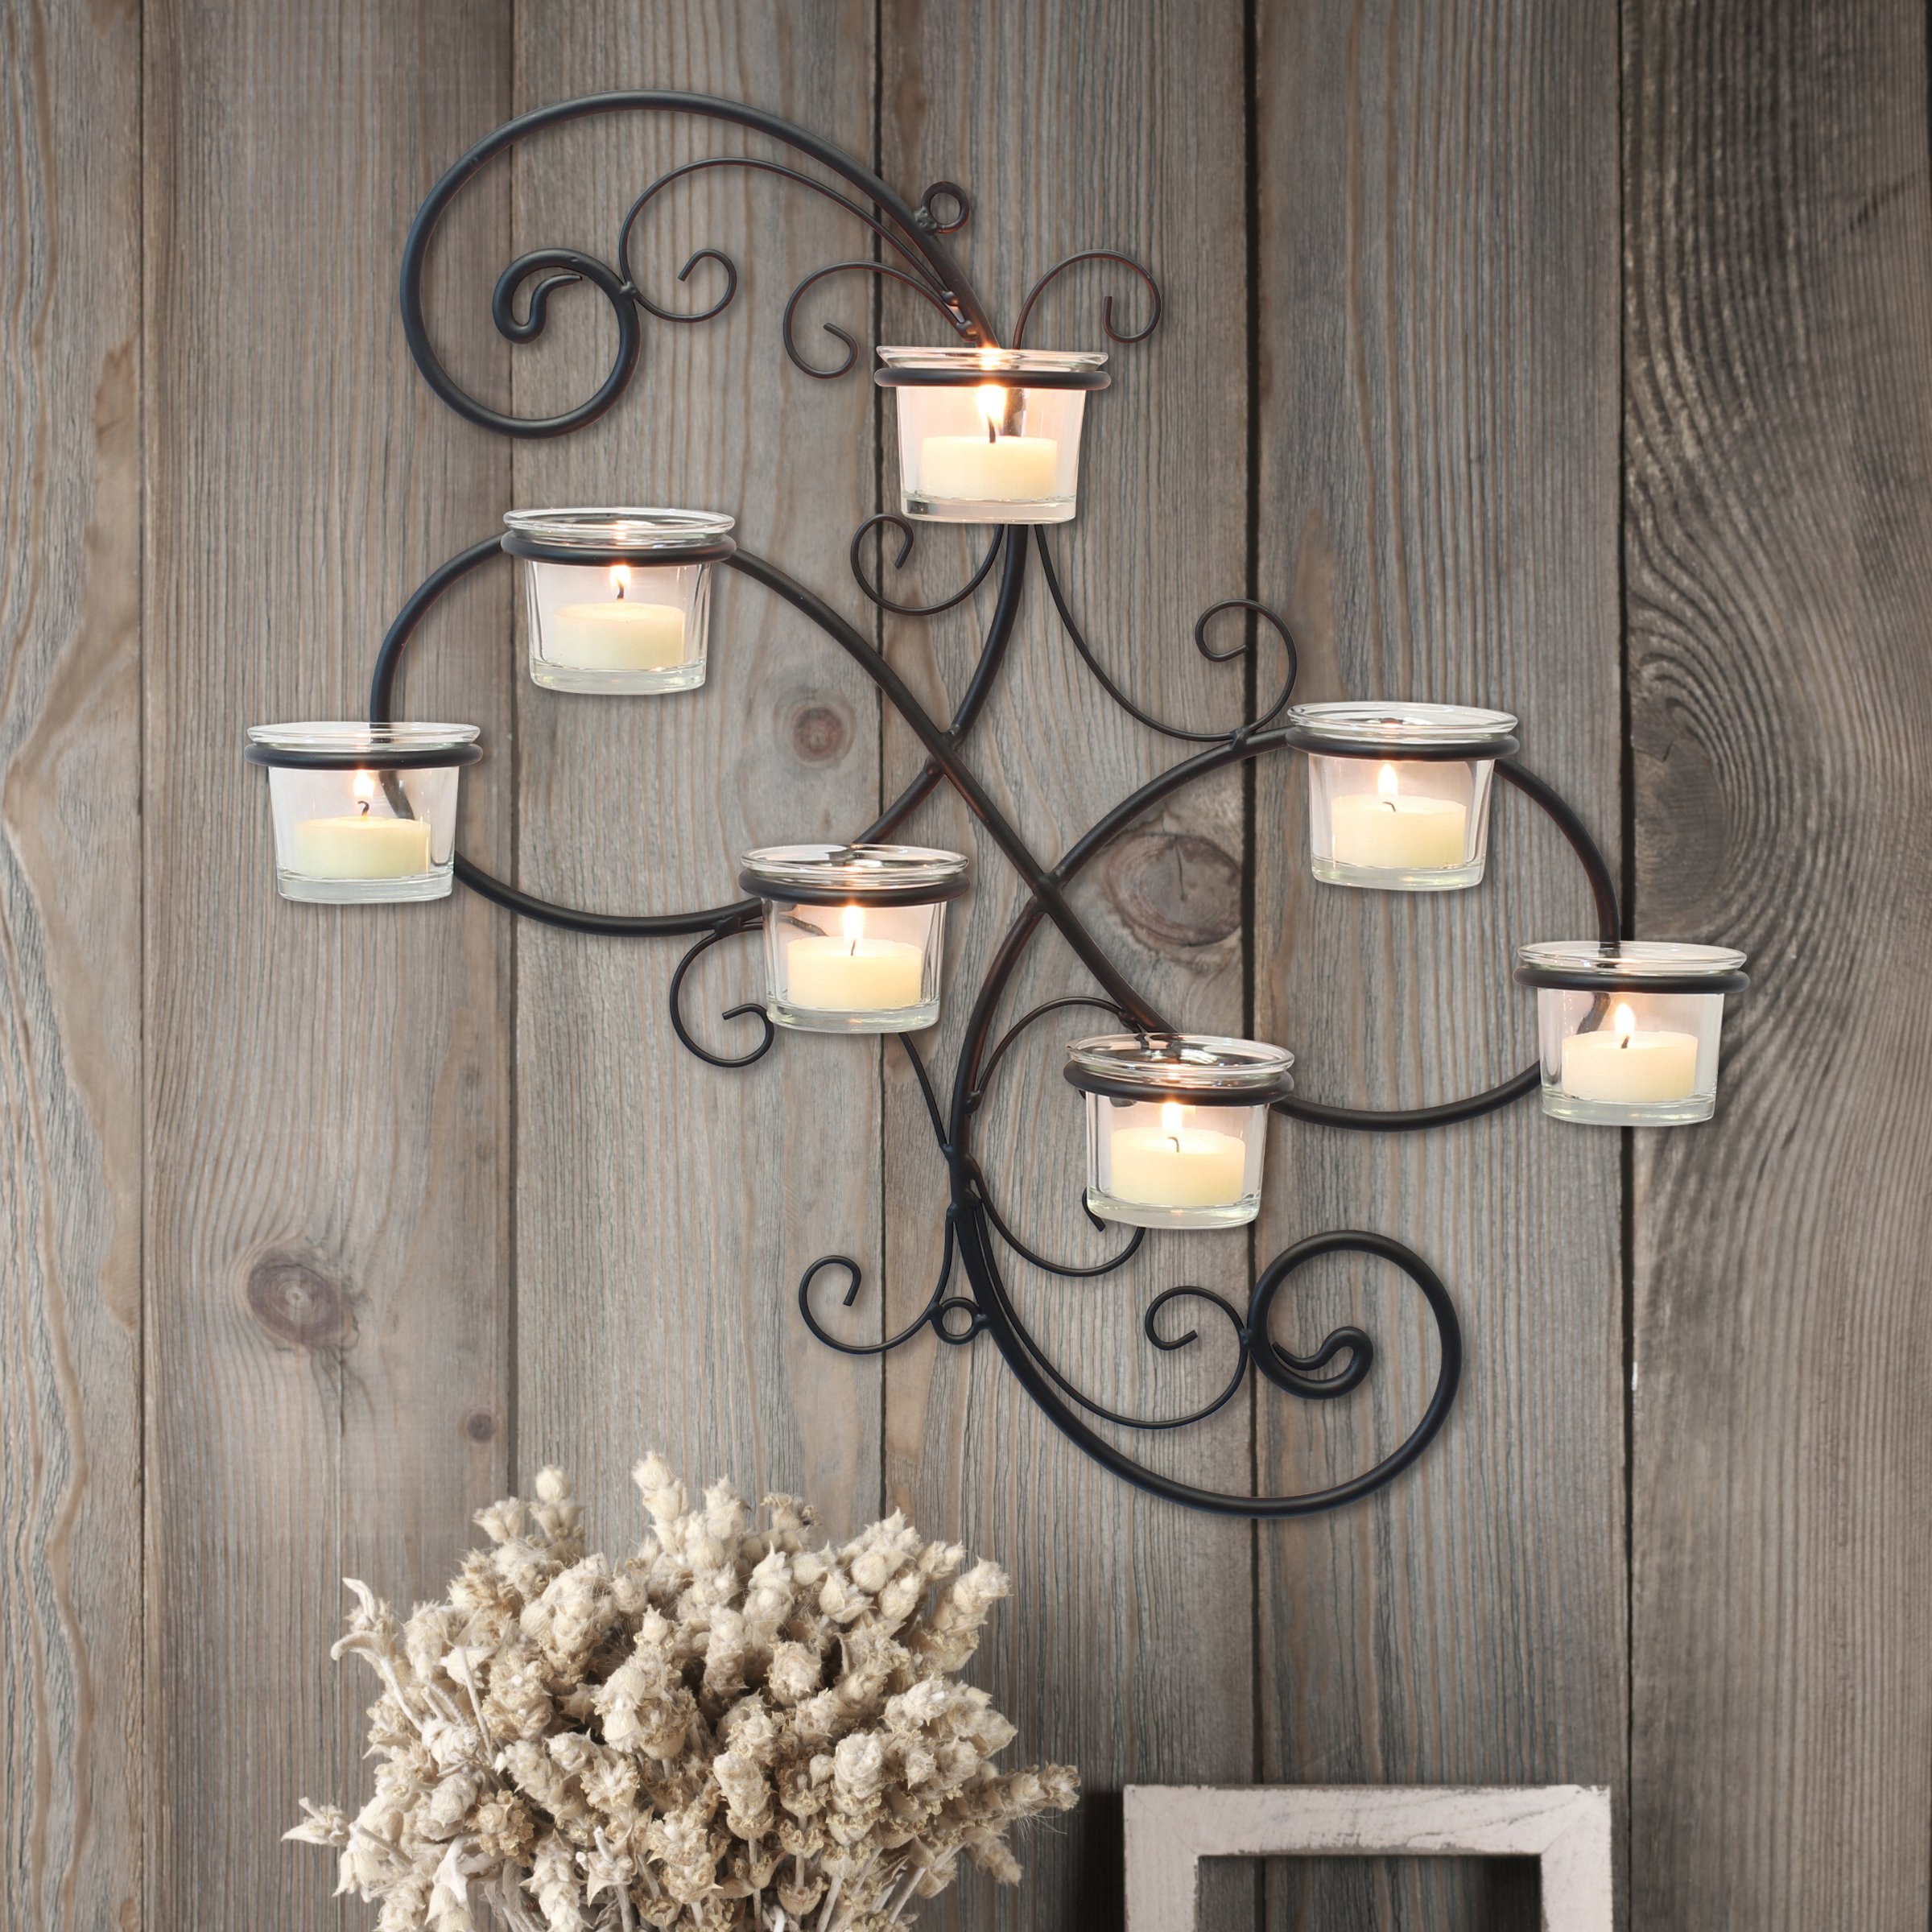 sconces ideas hanging wall outdoor ironglass roof brown lighting tress one light simple wooden barn glamorous design small lamp sconce